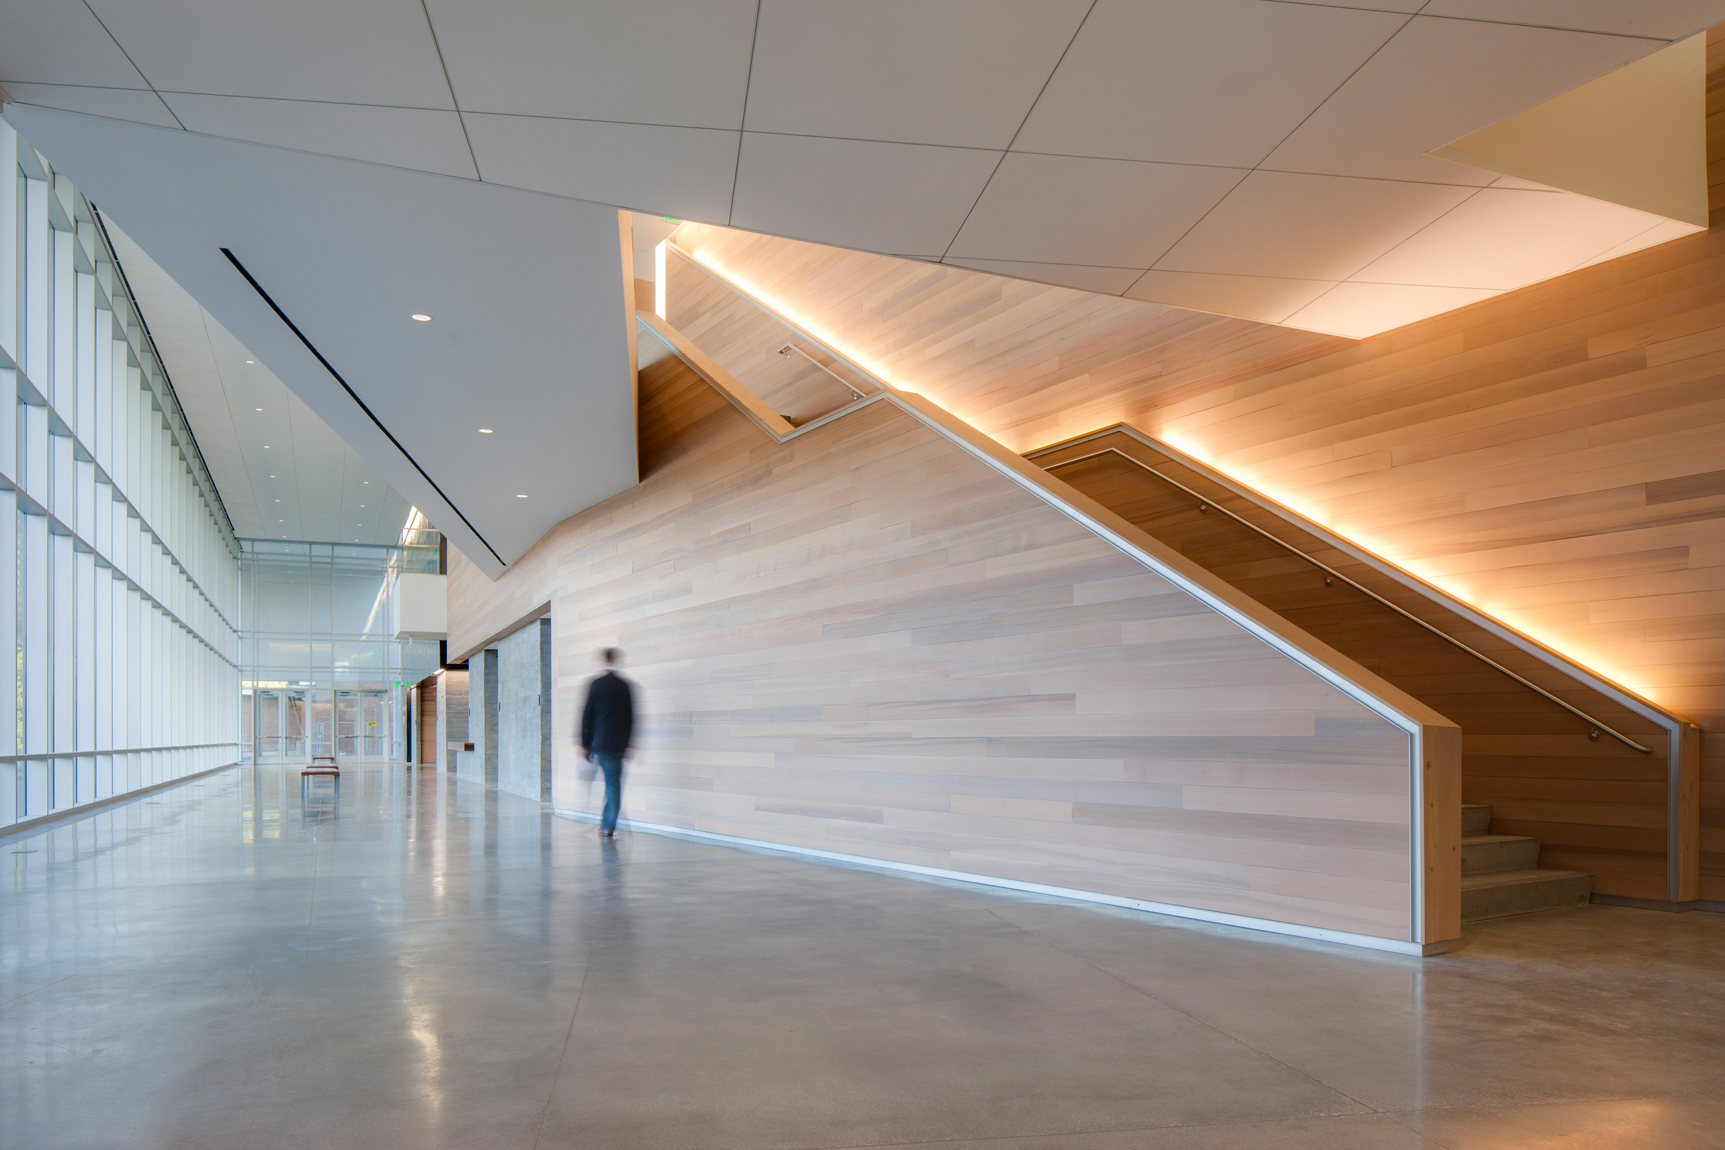 Motion blur of man walking down well lit corridor with large glass windows and sleek wooden stairwellArchitectural Photography by: Paul Richer / RICHER IMAGES